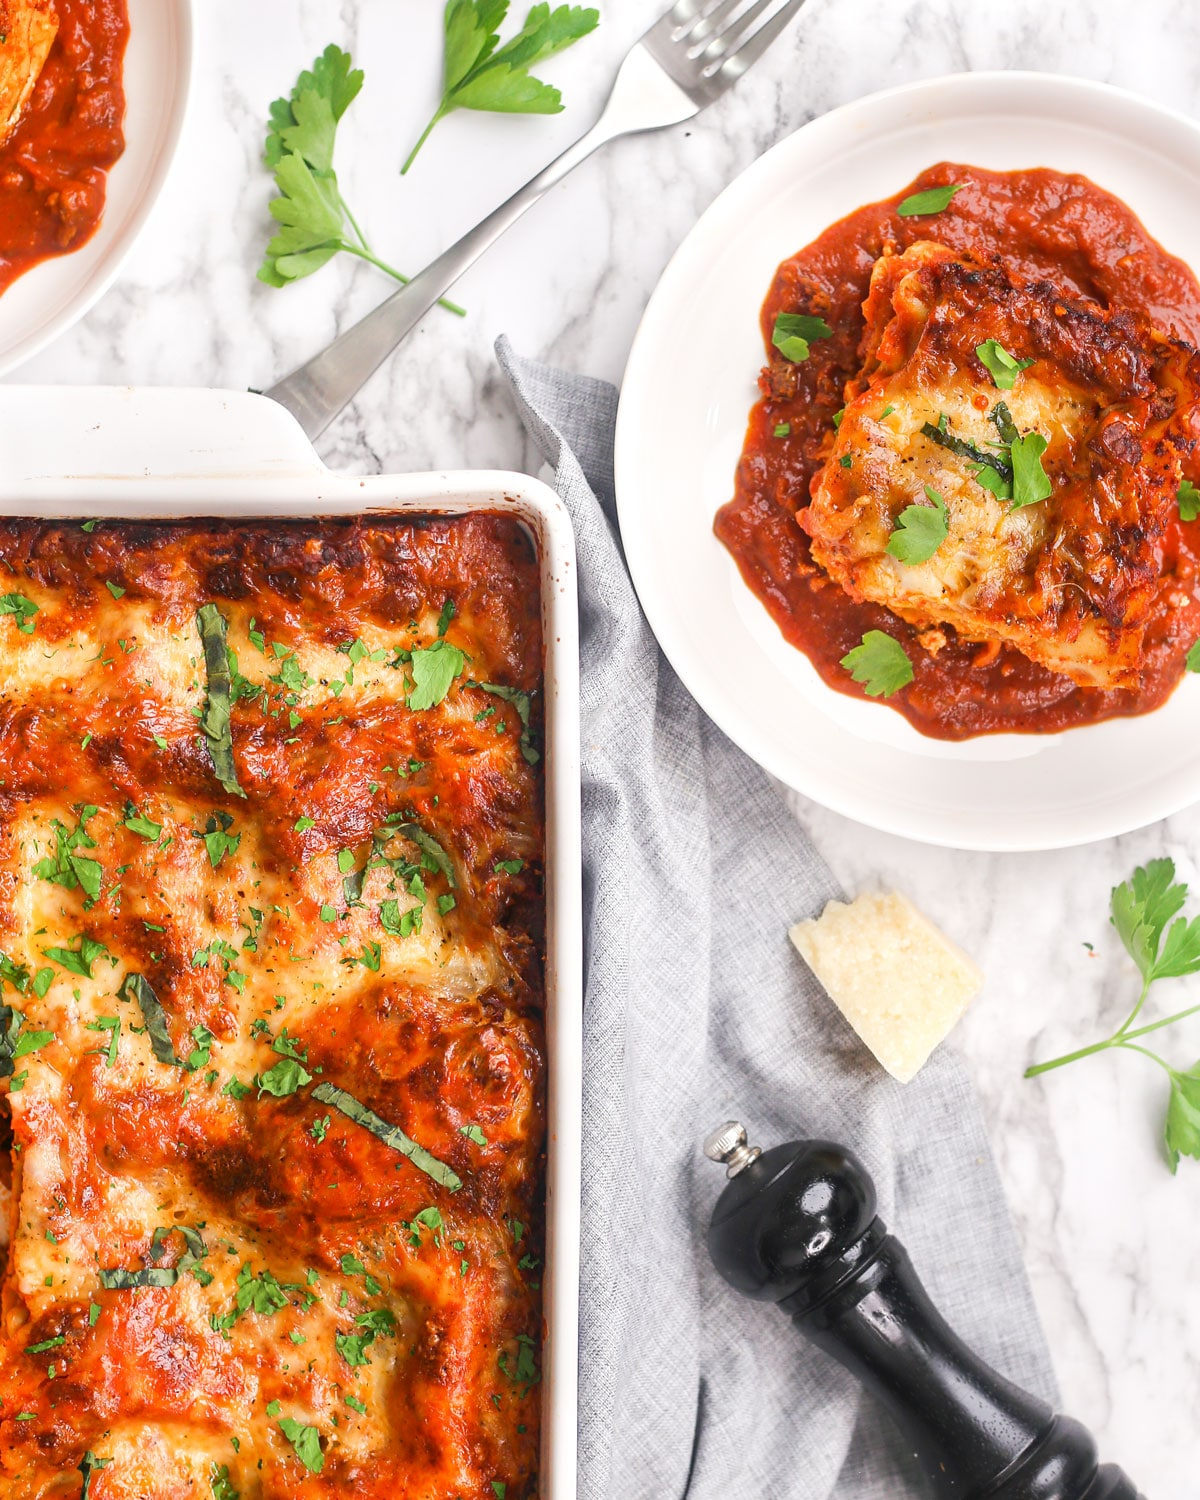 a casserole dish of lasagna with a slice of lasagna on a plate